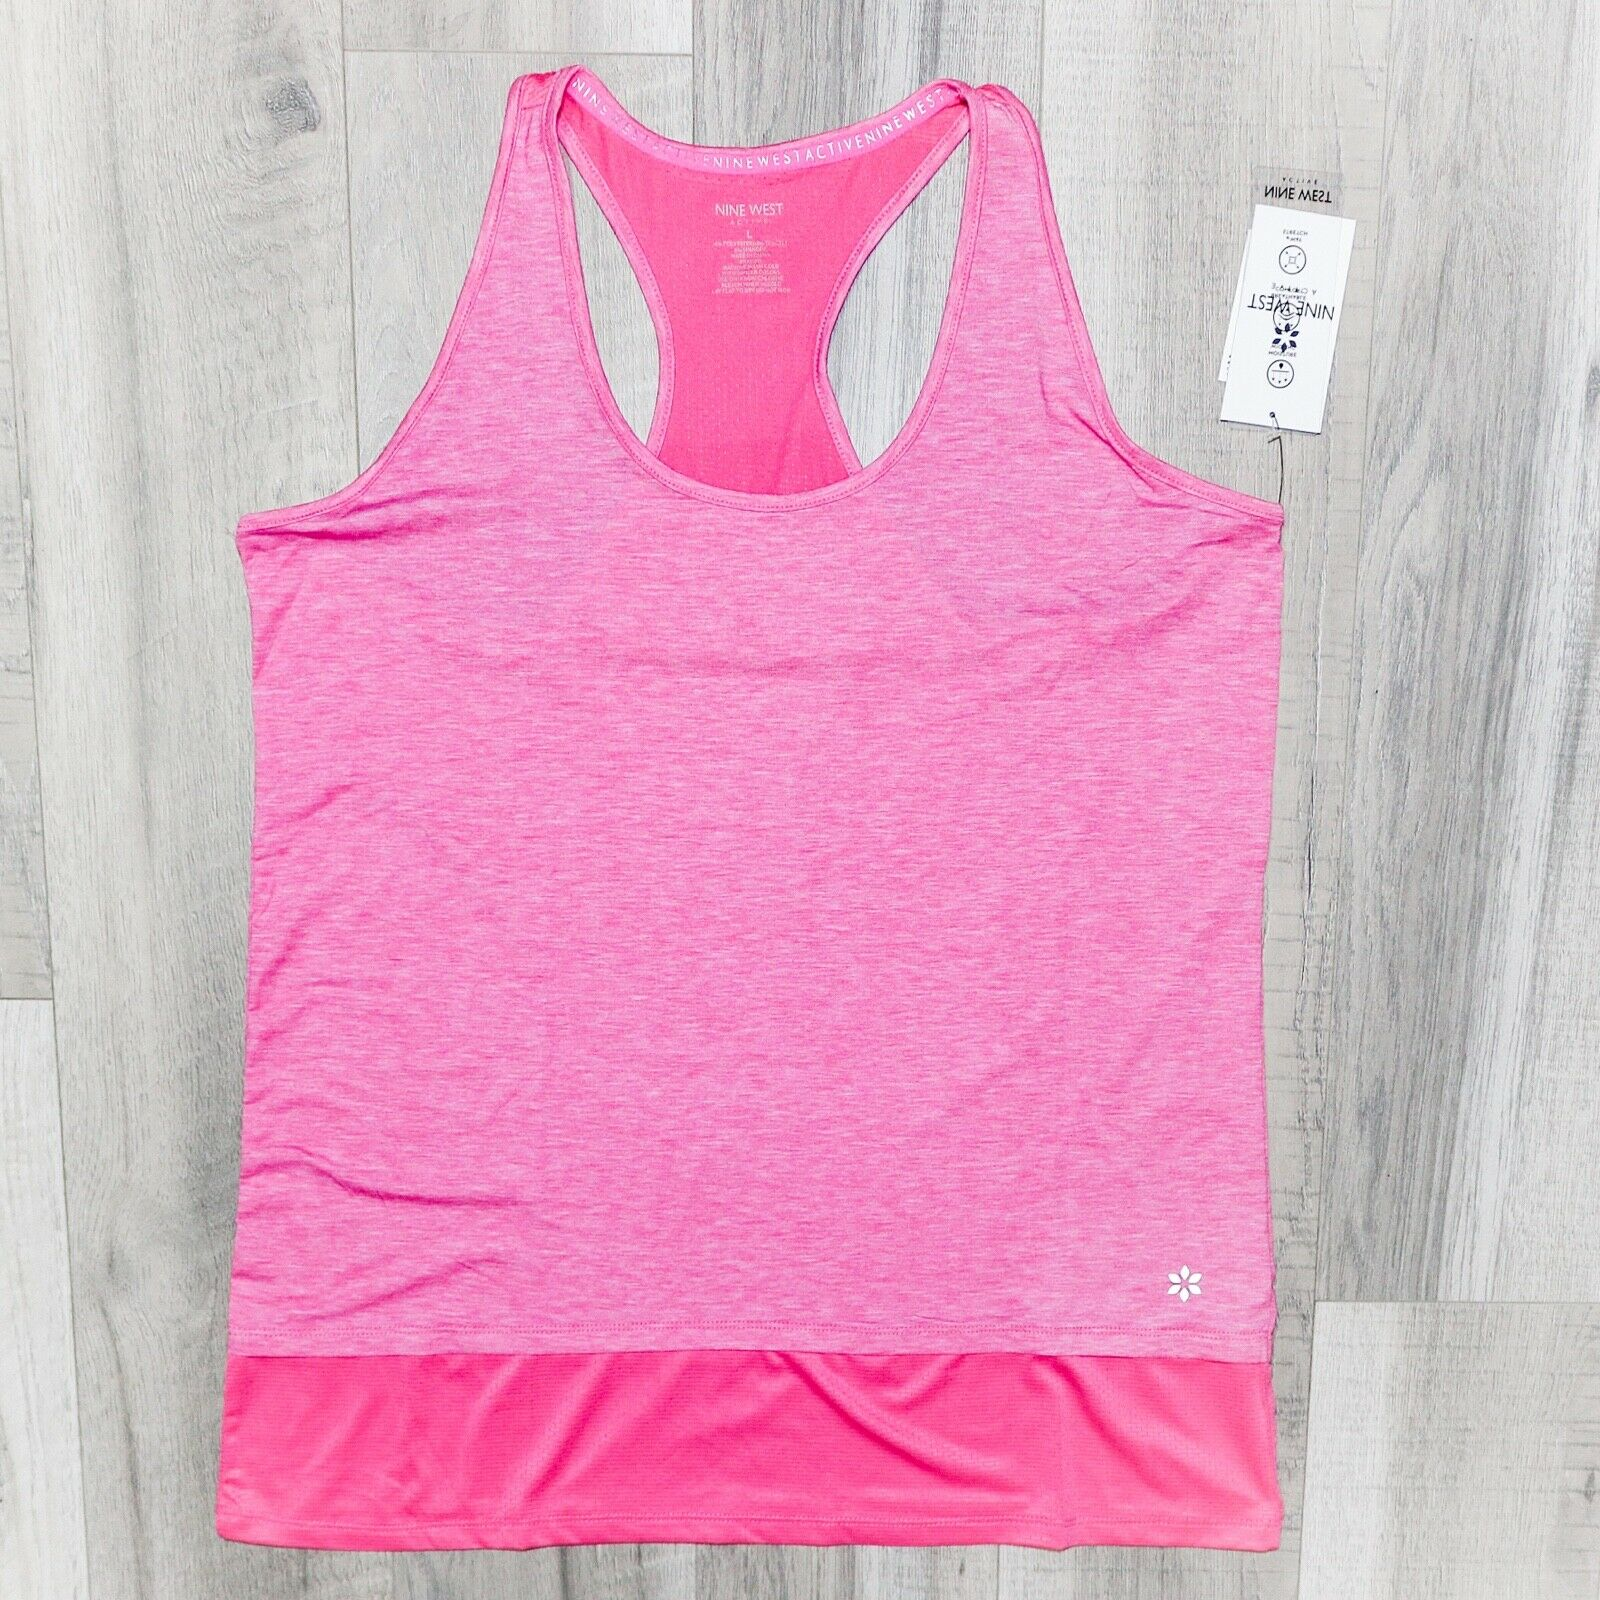 Nine West Active Racer Back Pink Tank Top. Size Large. New With Tag.